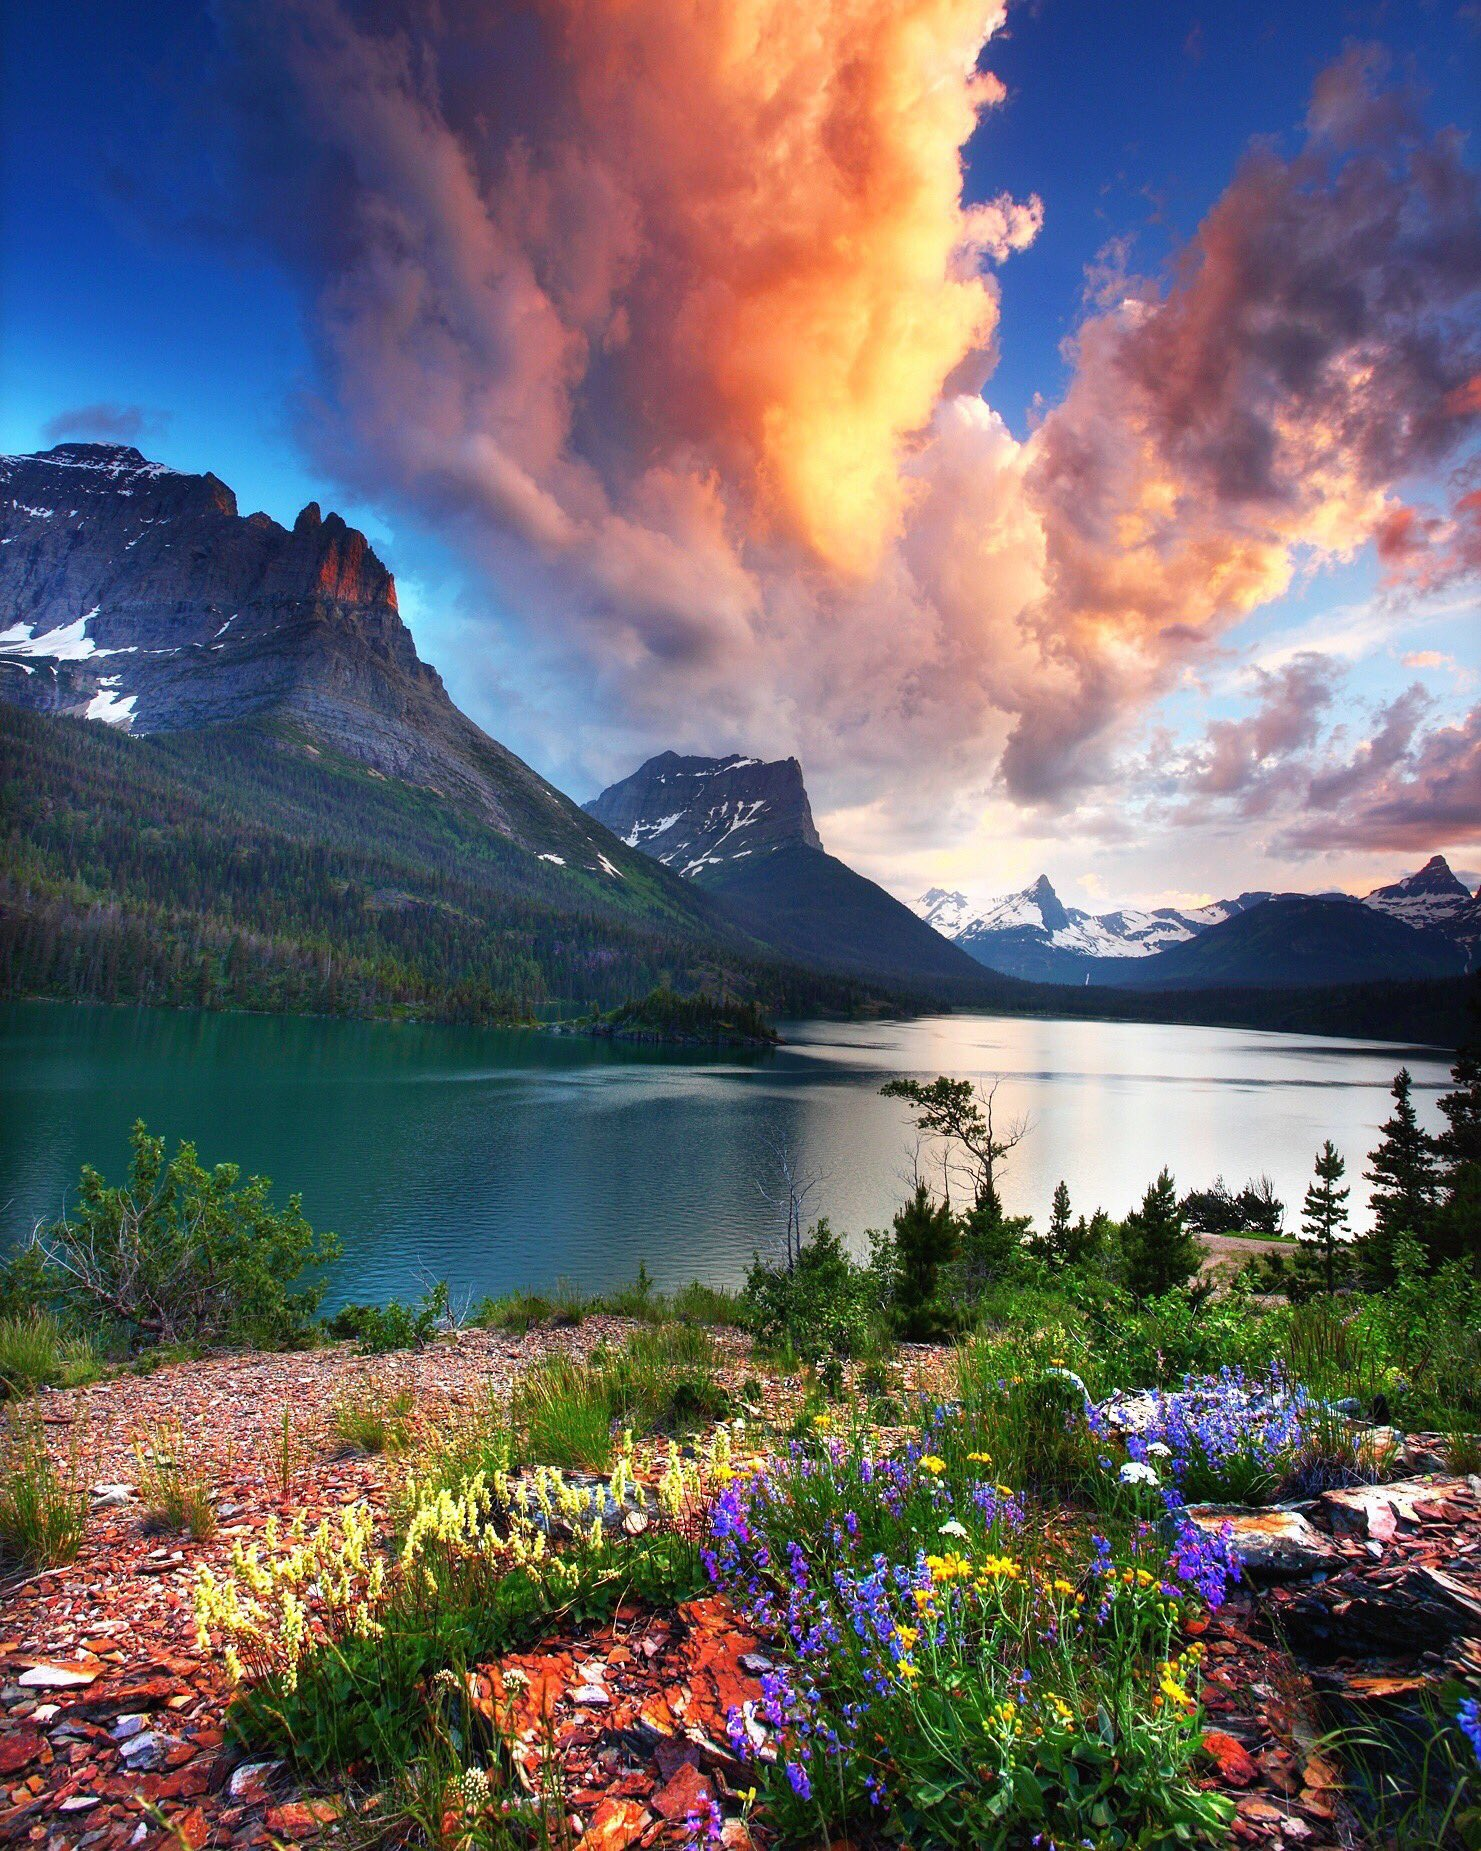 Gorgeous shot of Glacier National Park in Montana by Daniel Ewert. (h/t @Interior) https://t.co/sfRQo72CR0